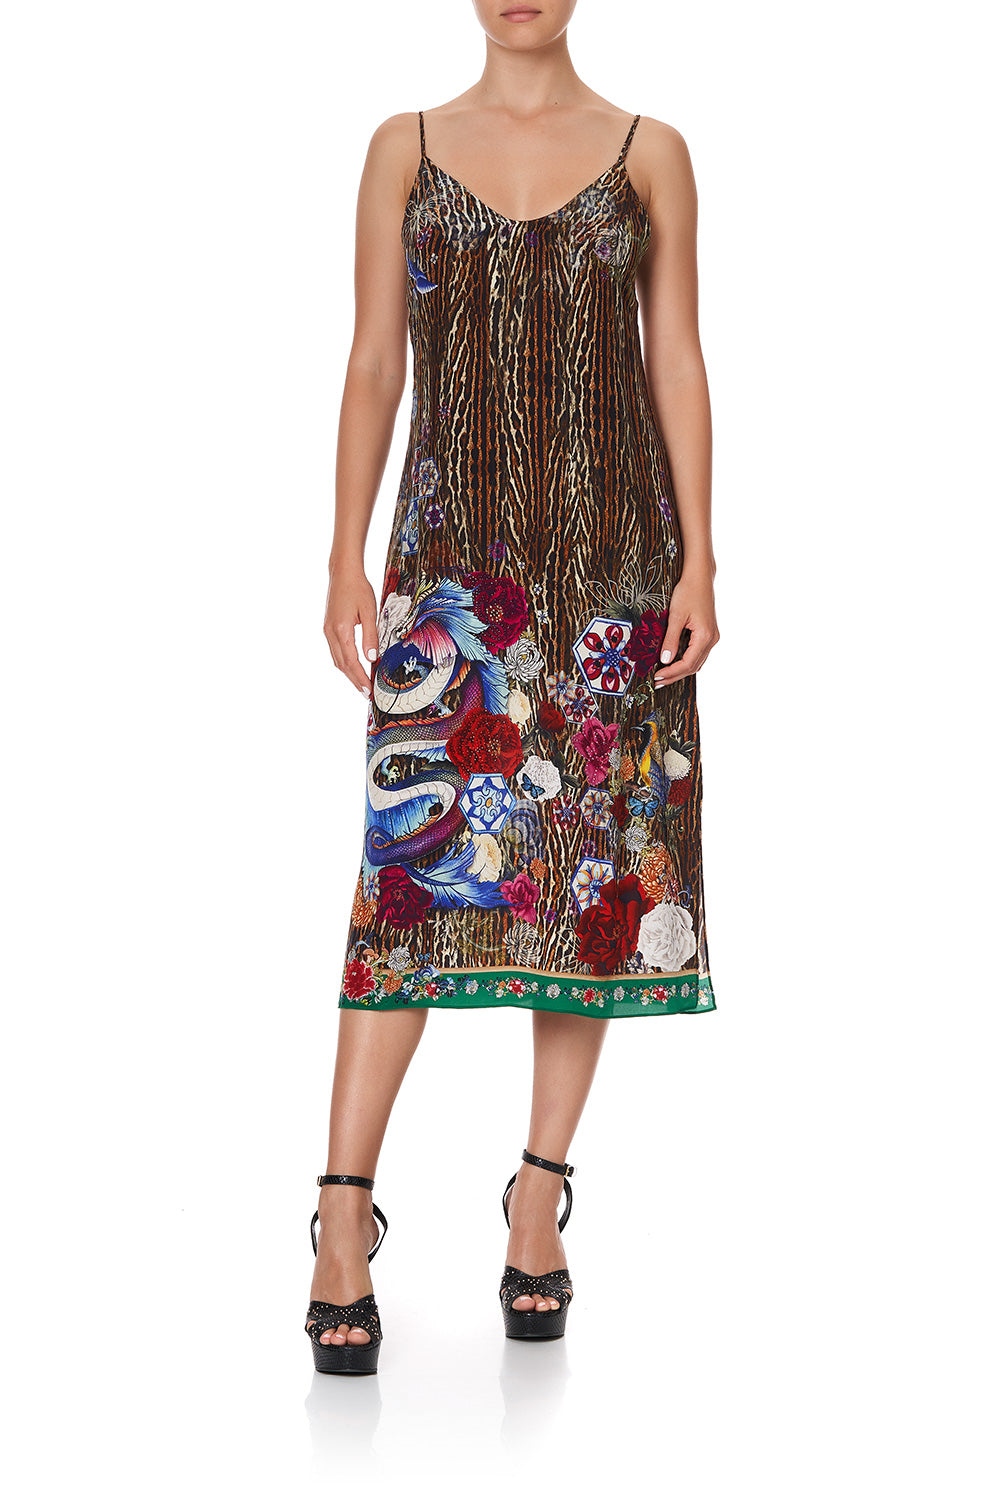 LACE UP MIDI DRESS JEWEL OF JUPITER